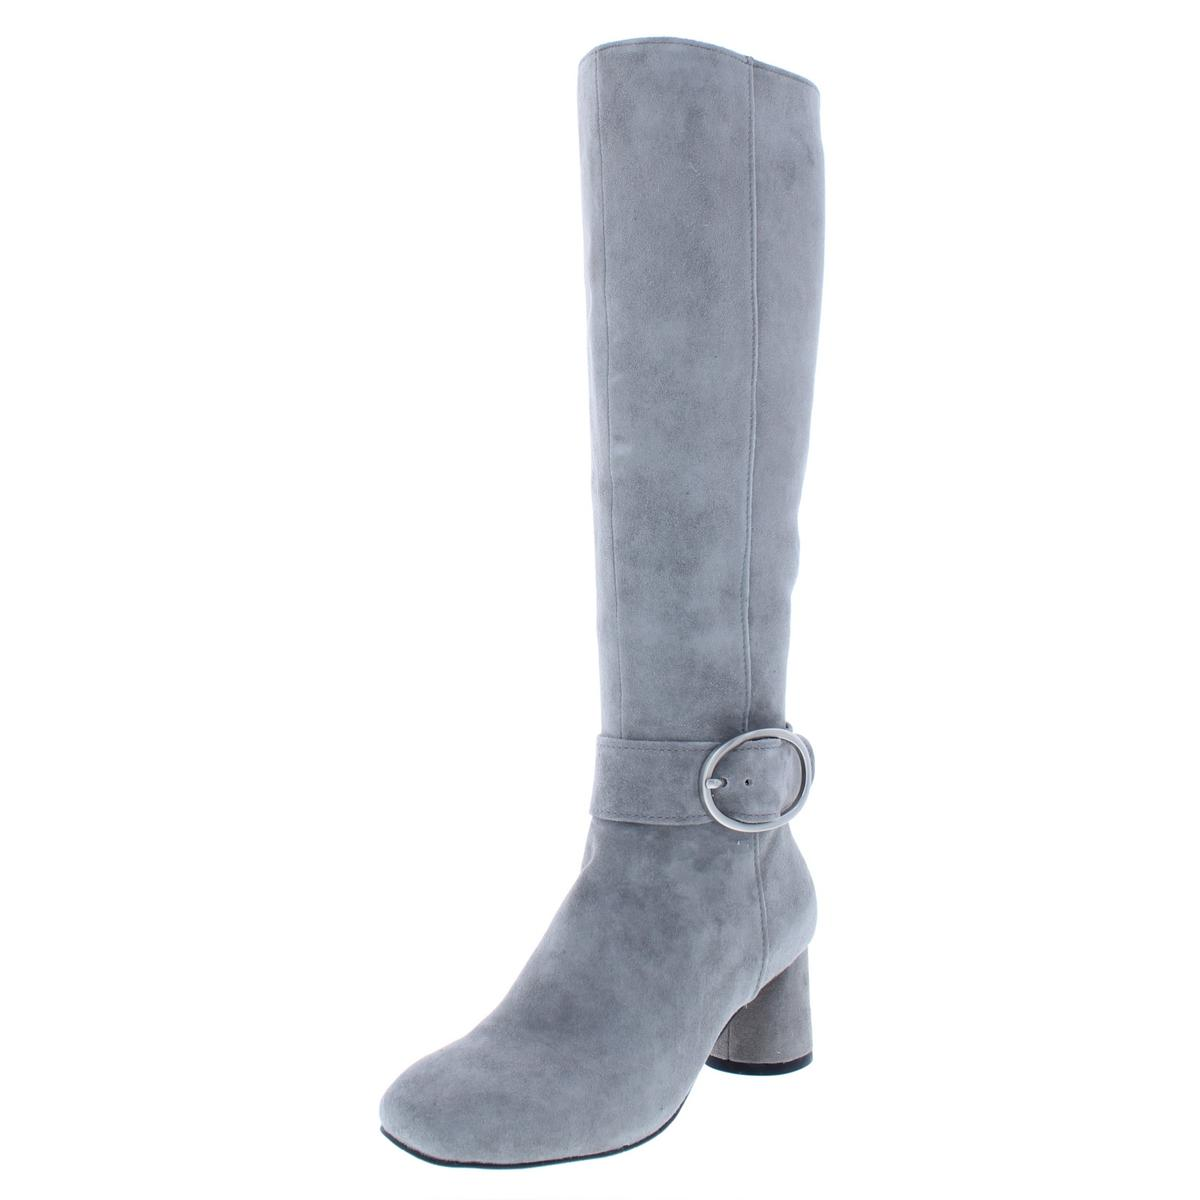 a0ee930903e Details about Donald J. Pliner Womens Caye Suede Tall Fashion Knee-High  Boots Shoes BHFO 9743